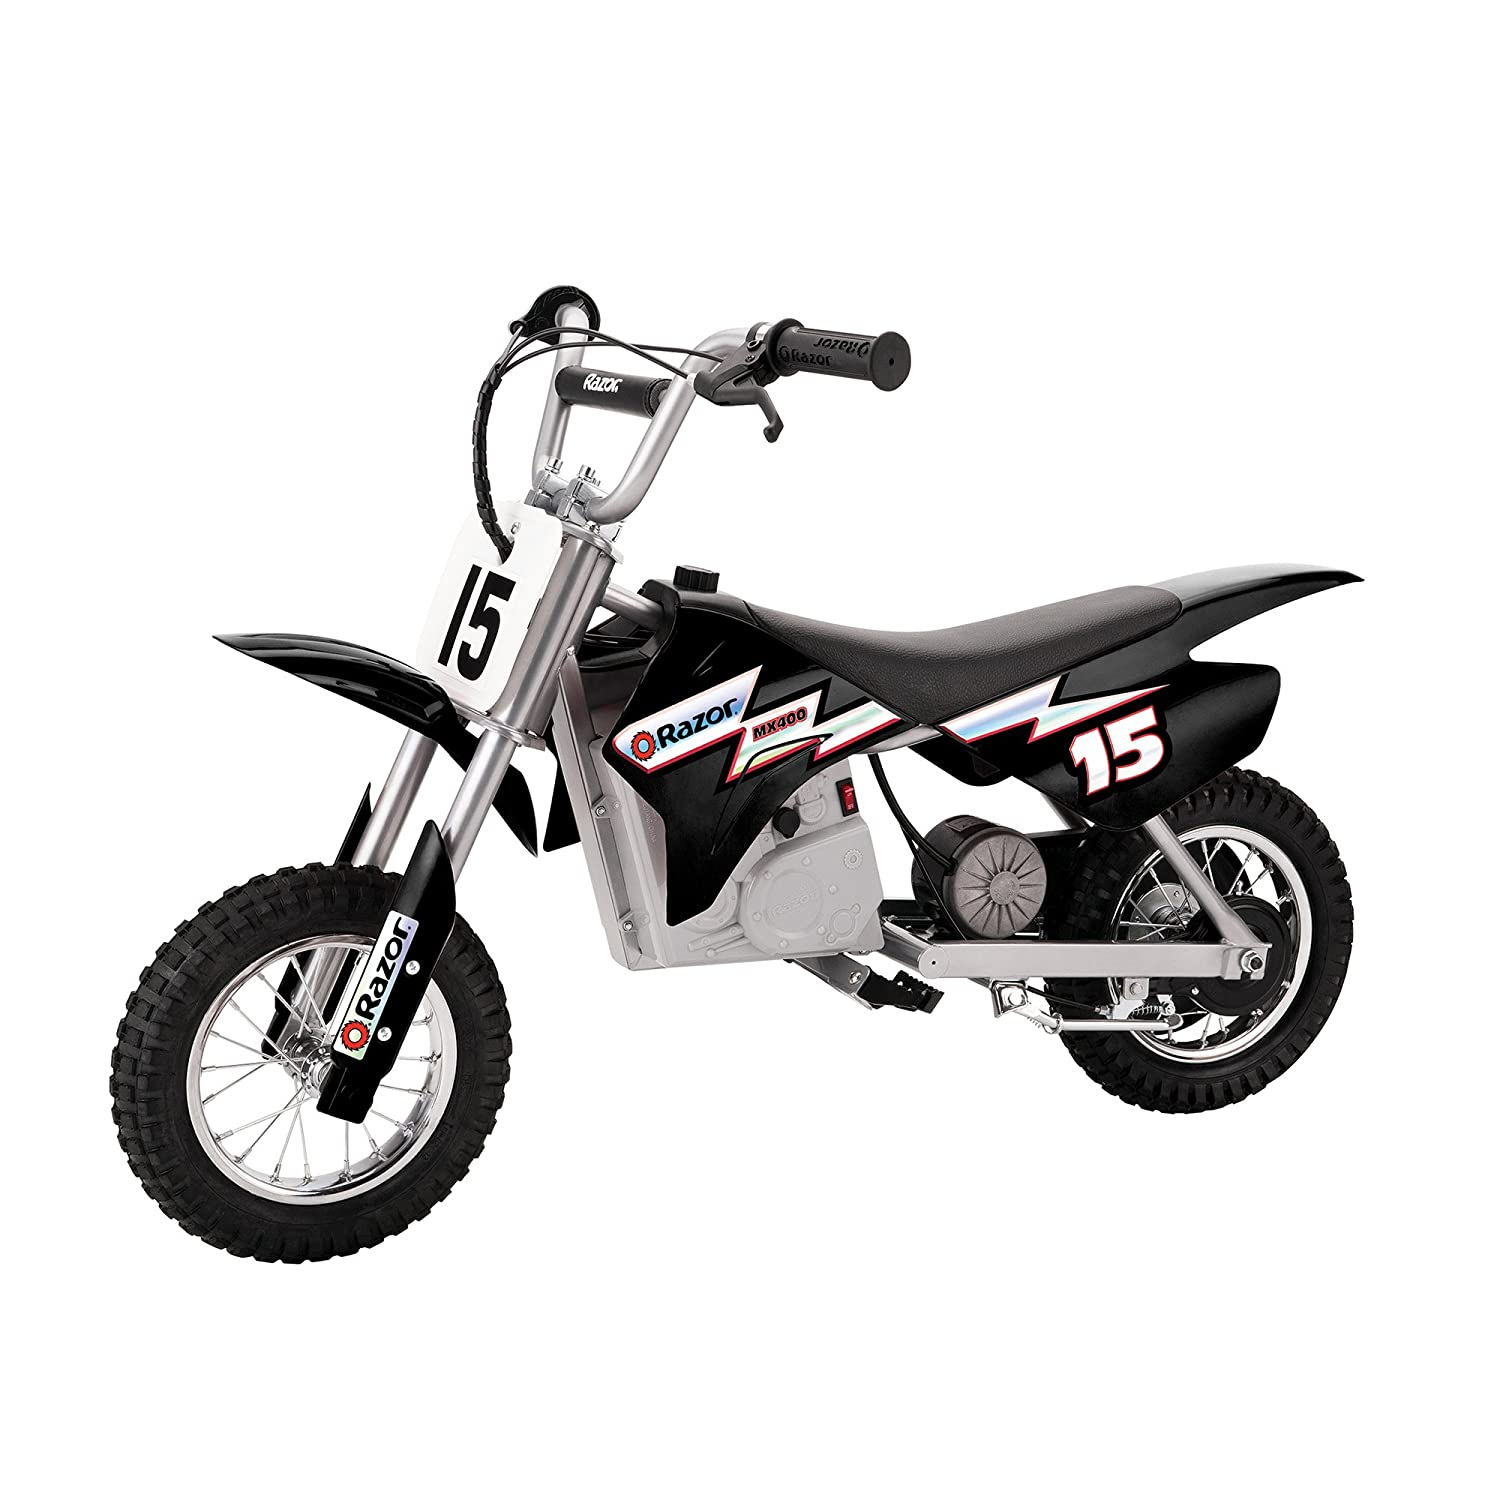 Razor MX400 Dirt Rocket 24V Electric Toy Motocross Motorcycle Dirt Bike, Black